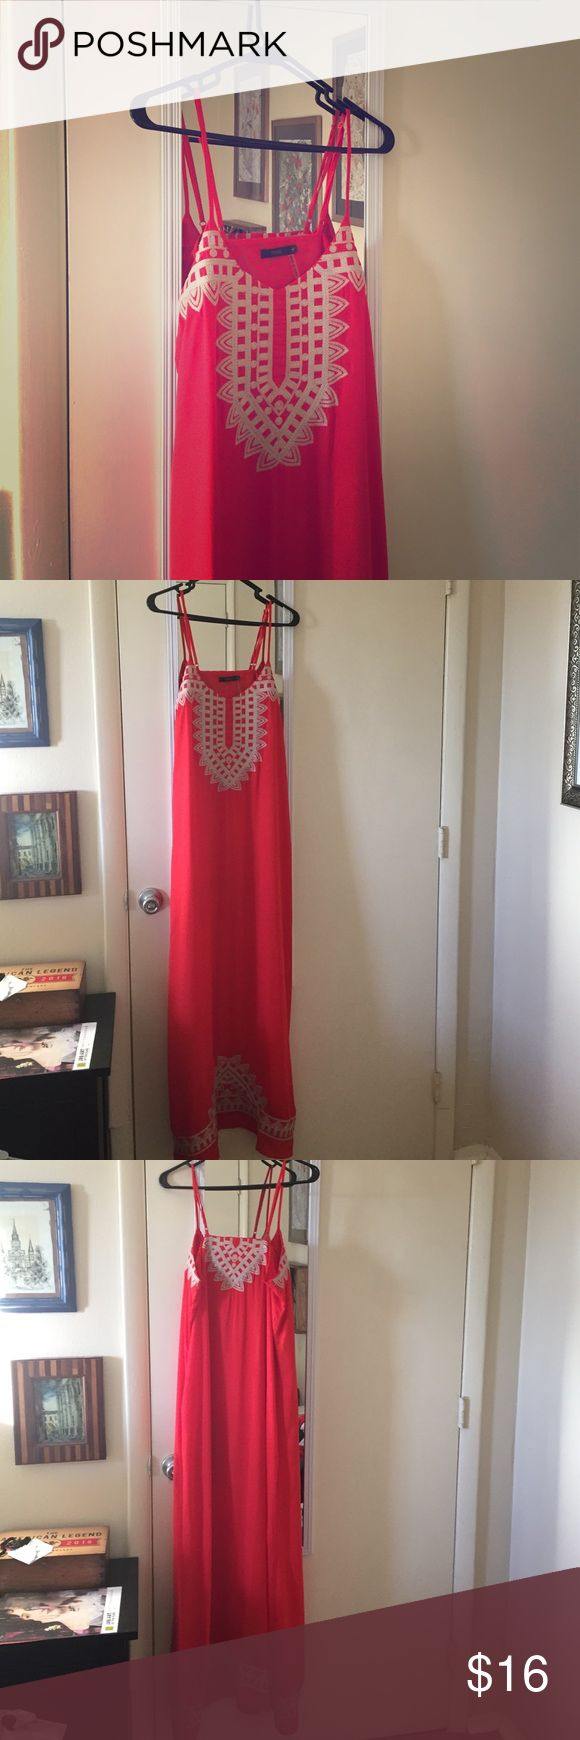 Red/orange maxi dress THML size M Maxi dress, red color with ivory embroidery detail at the top and bottom of the dress. Size M, adjustable straps, lined to the thigh. Great dress, great shape, no damage, I just don't wear it much. THML Dresses Maxi